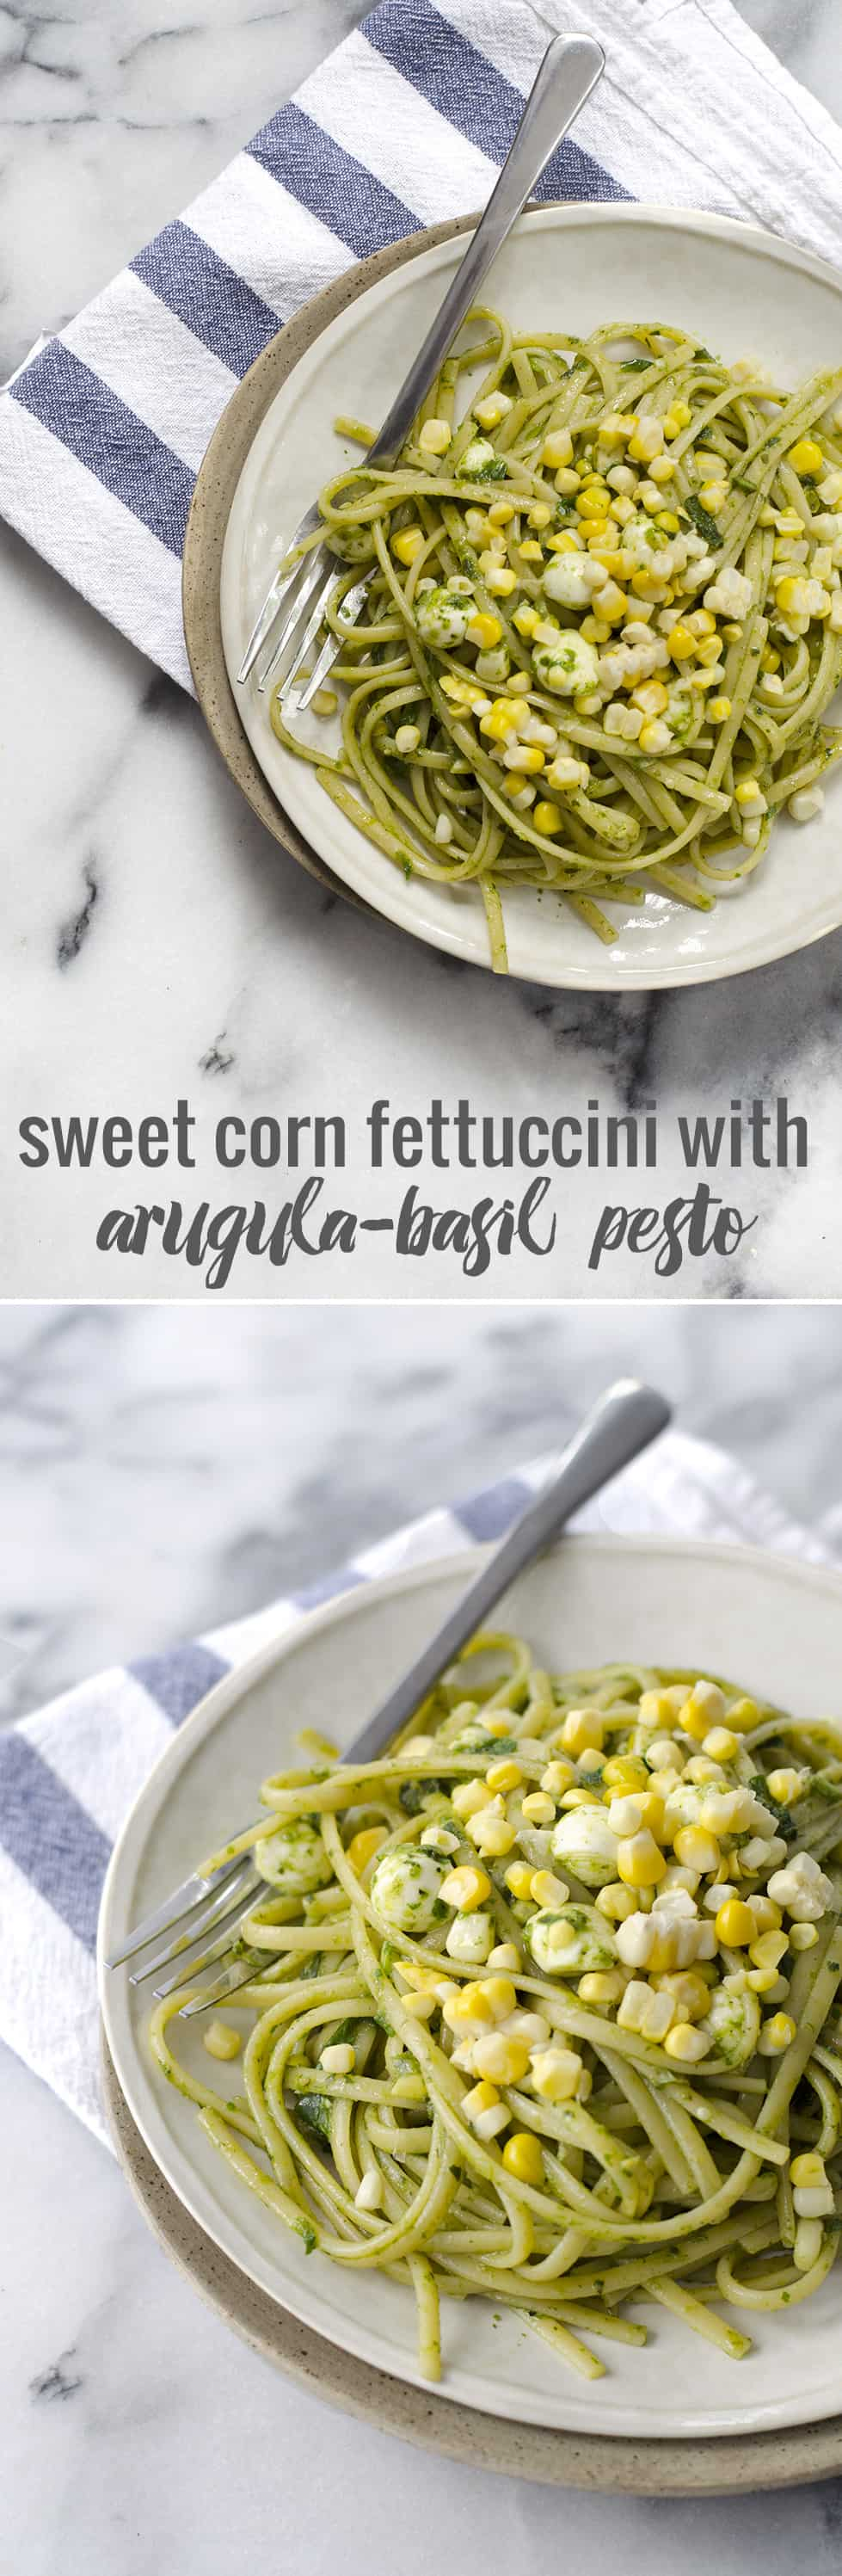 Fettuccini with Arugula Pesto and Sweet Corn- the perfect pasta for summer! Ready in just 20 minutes! Vegetarian, easily vegan. | www.delishknowledge.com